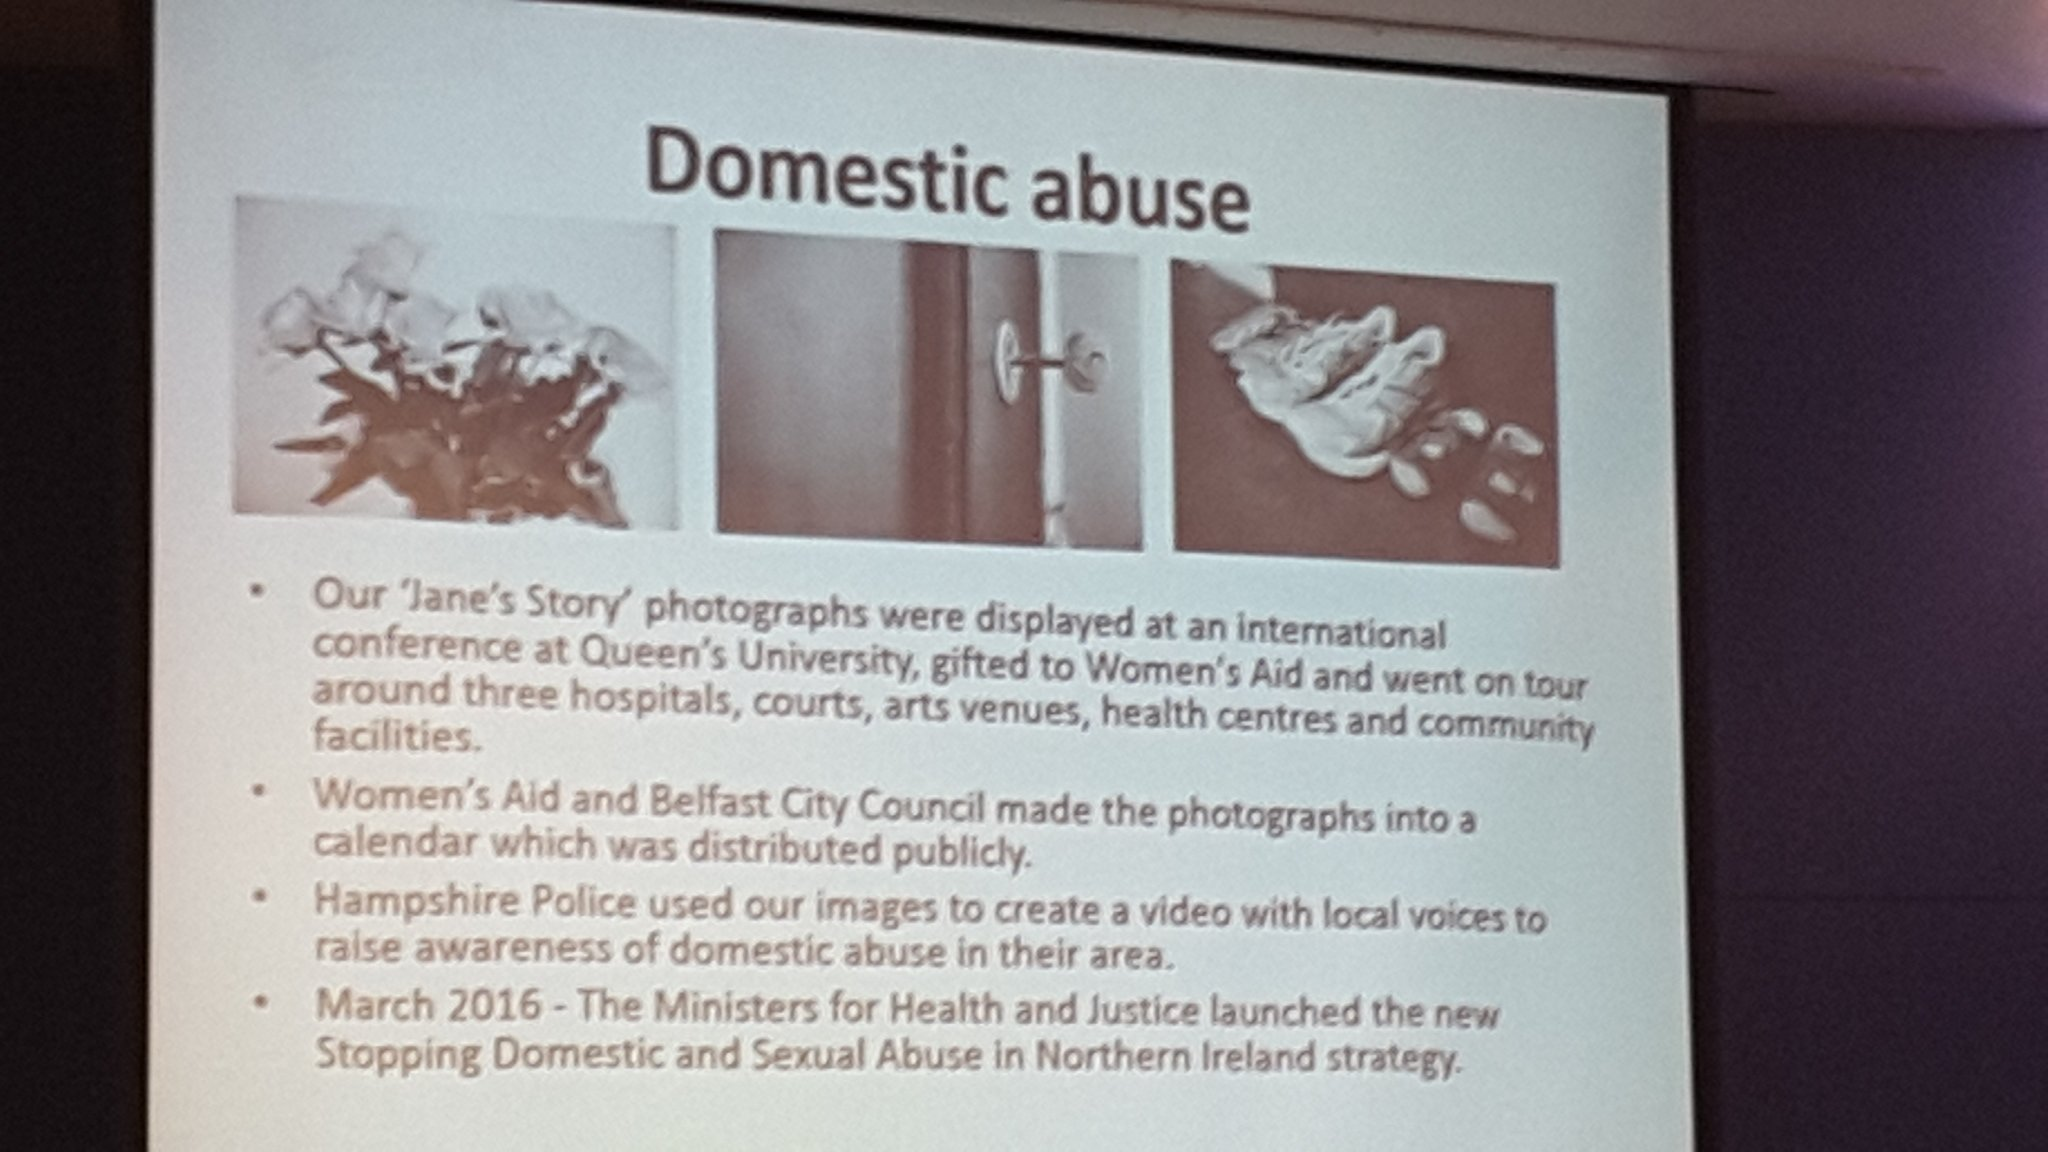 More data on #domesticabuse and how data is being used from @Kath_TheDetail #DetailData conf today in #Belfast Cc @Amirah_UK @womensaid https://t.co/VsQbeqTwnO